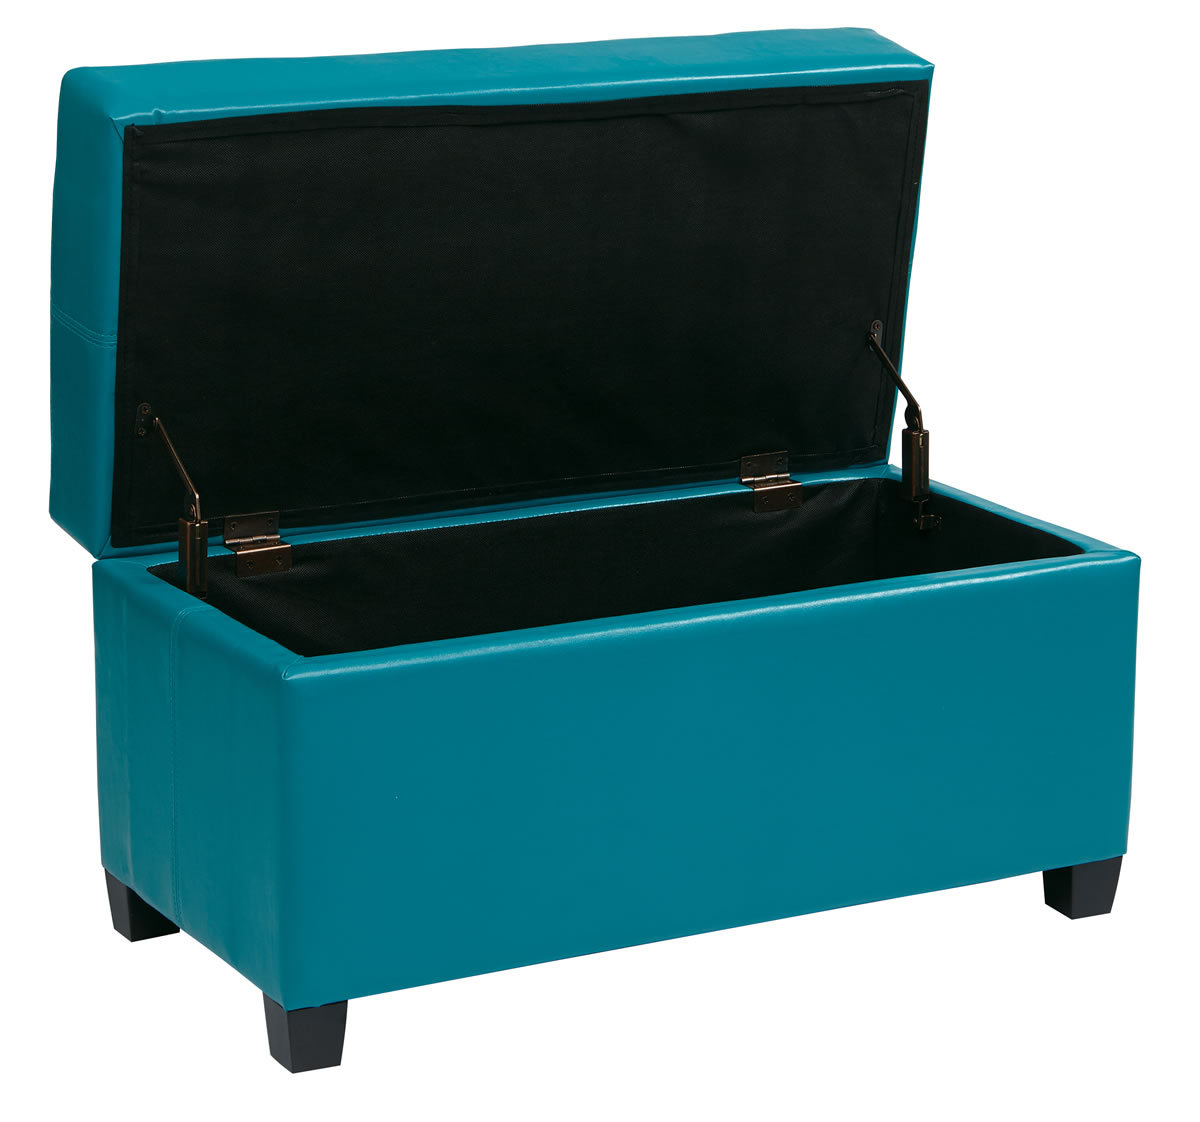 32 Wide Vinyl Storage Ottoman Bench Toy Chest Wood Legs